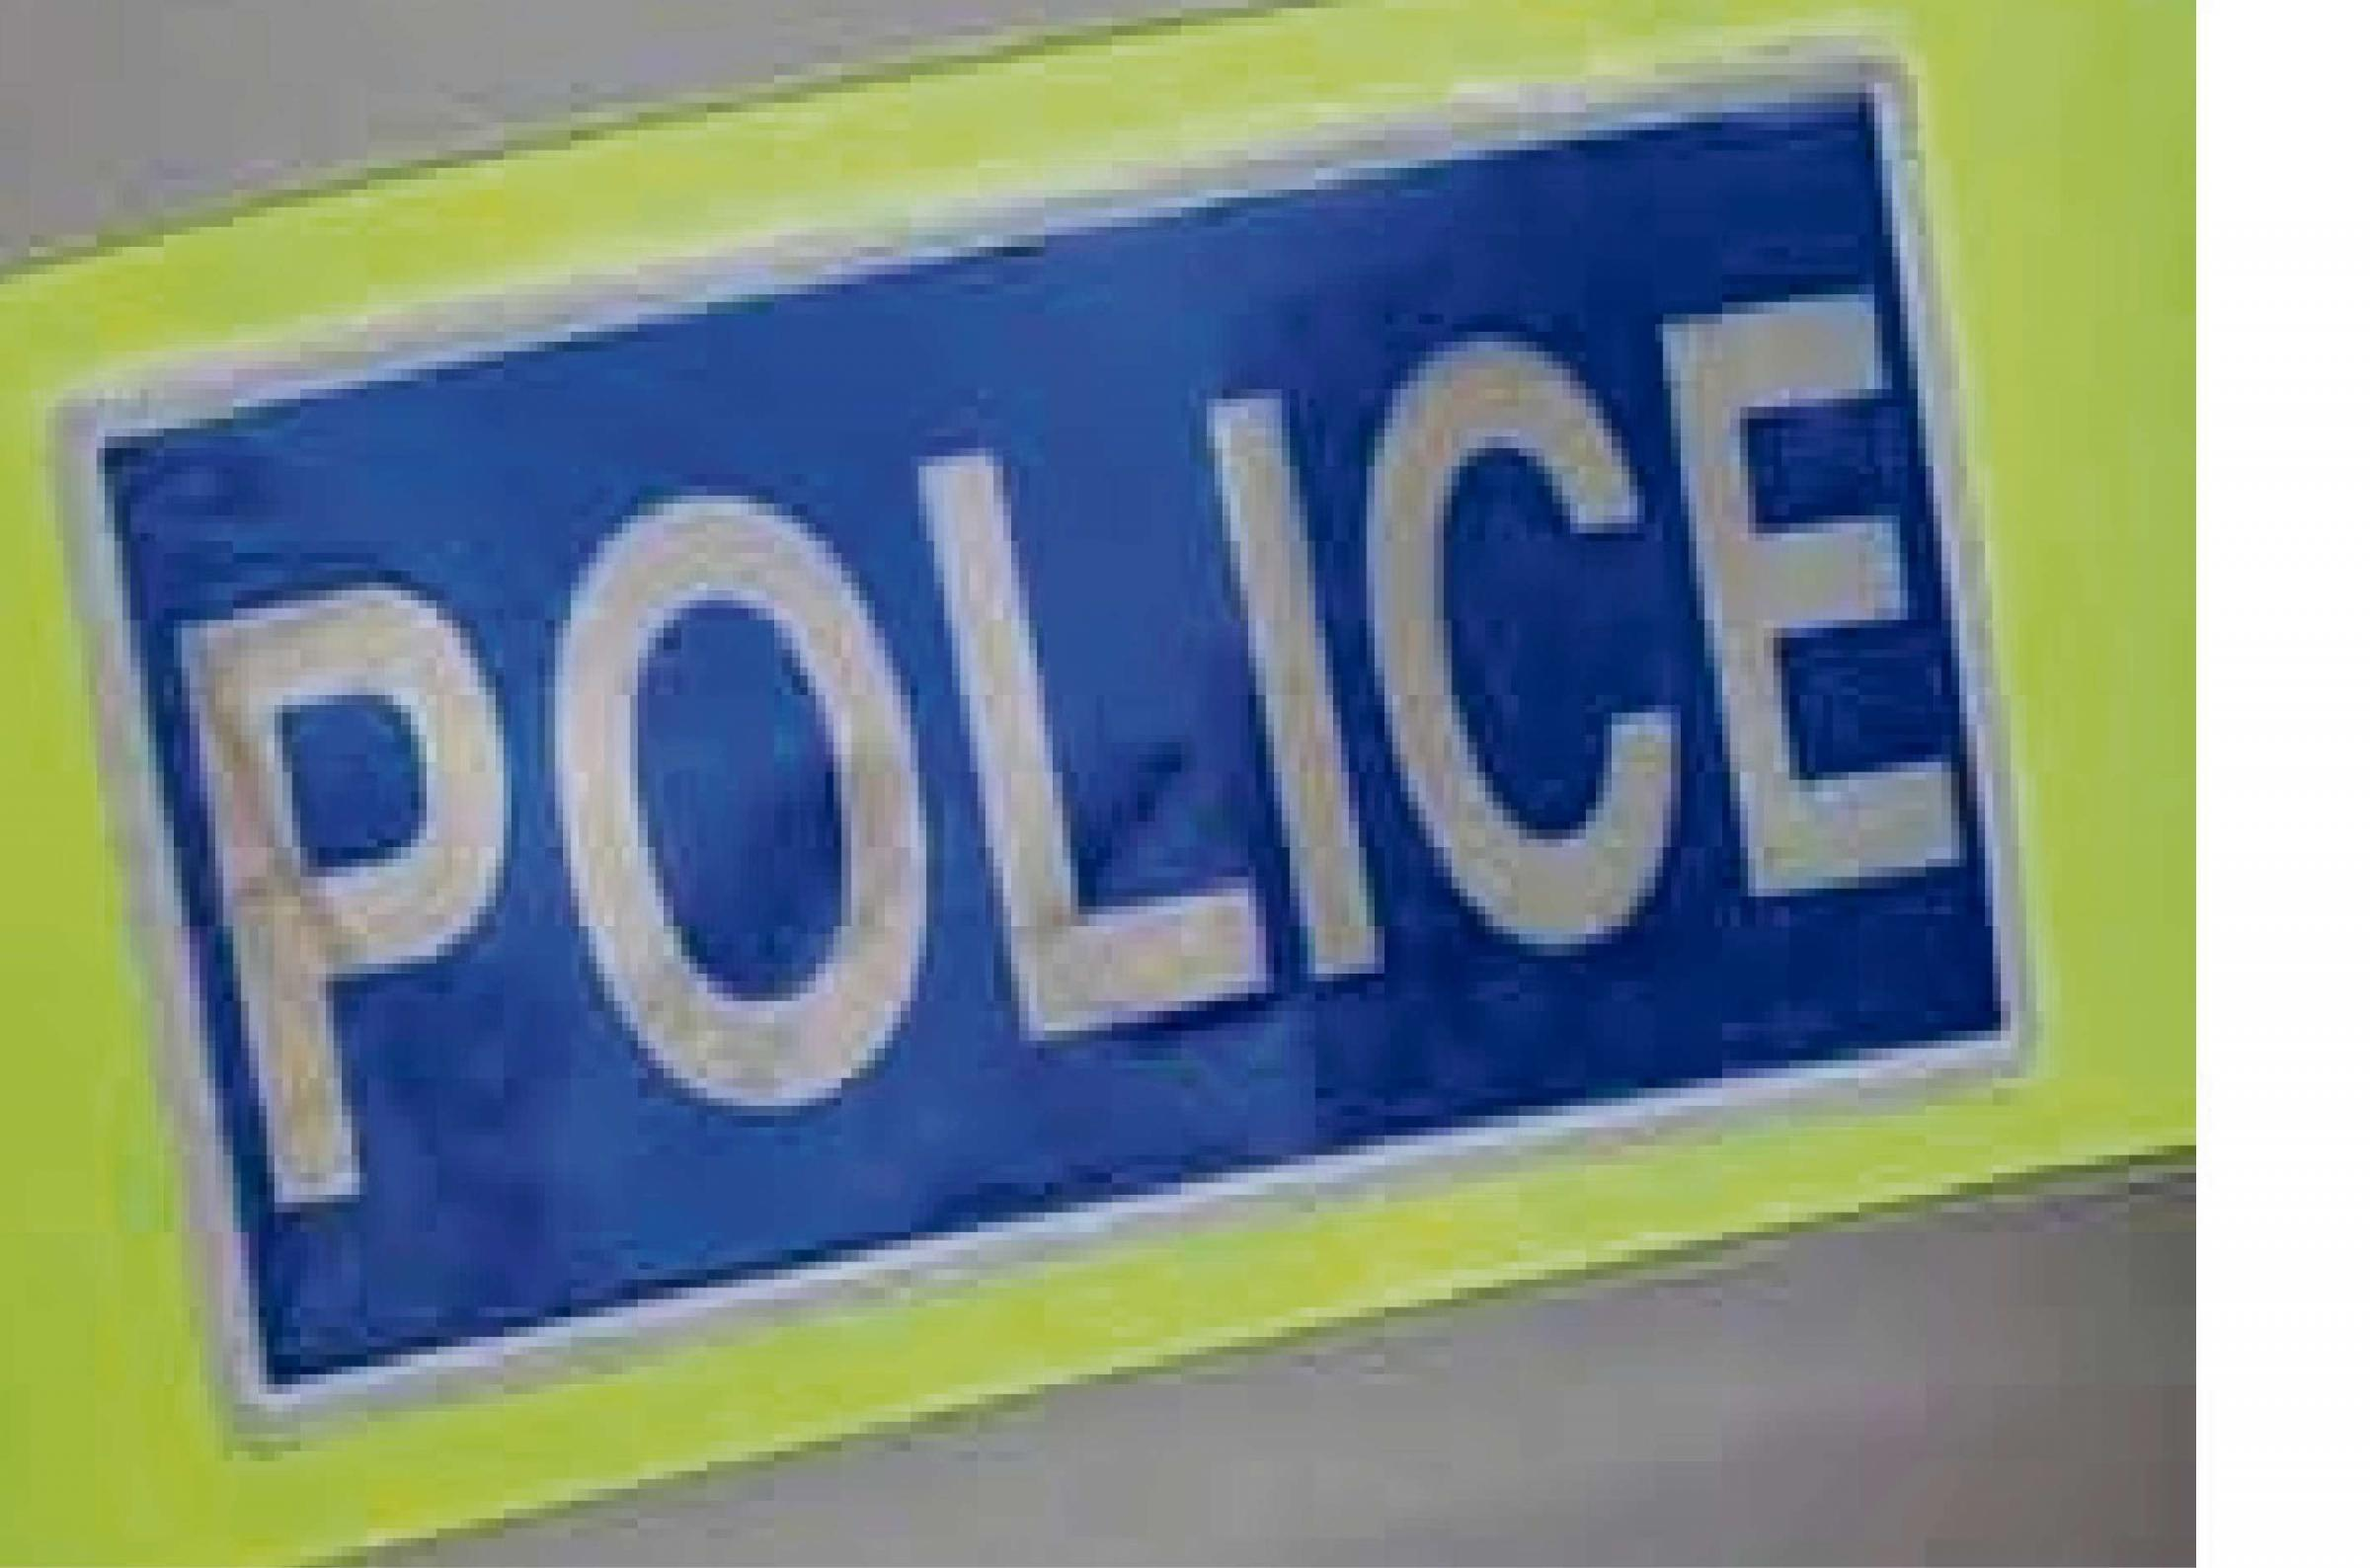 Man dies after being hit by HGV